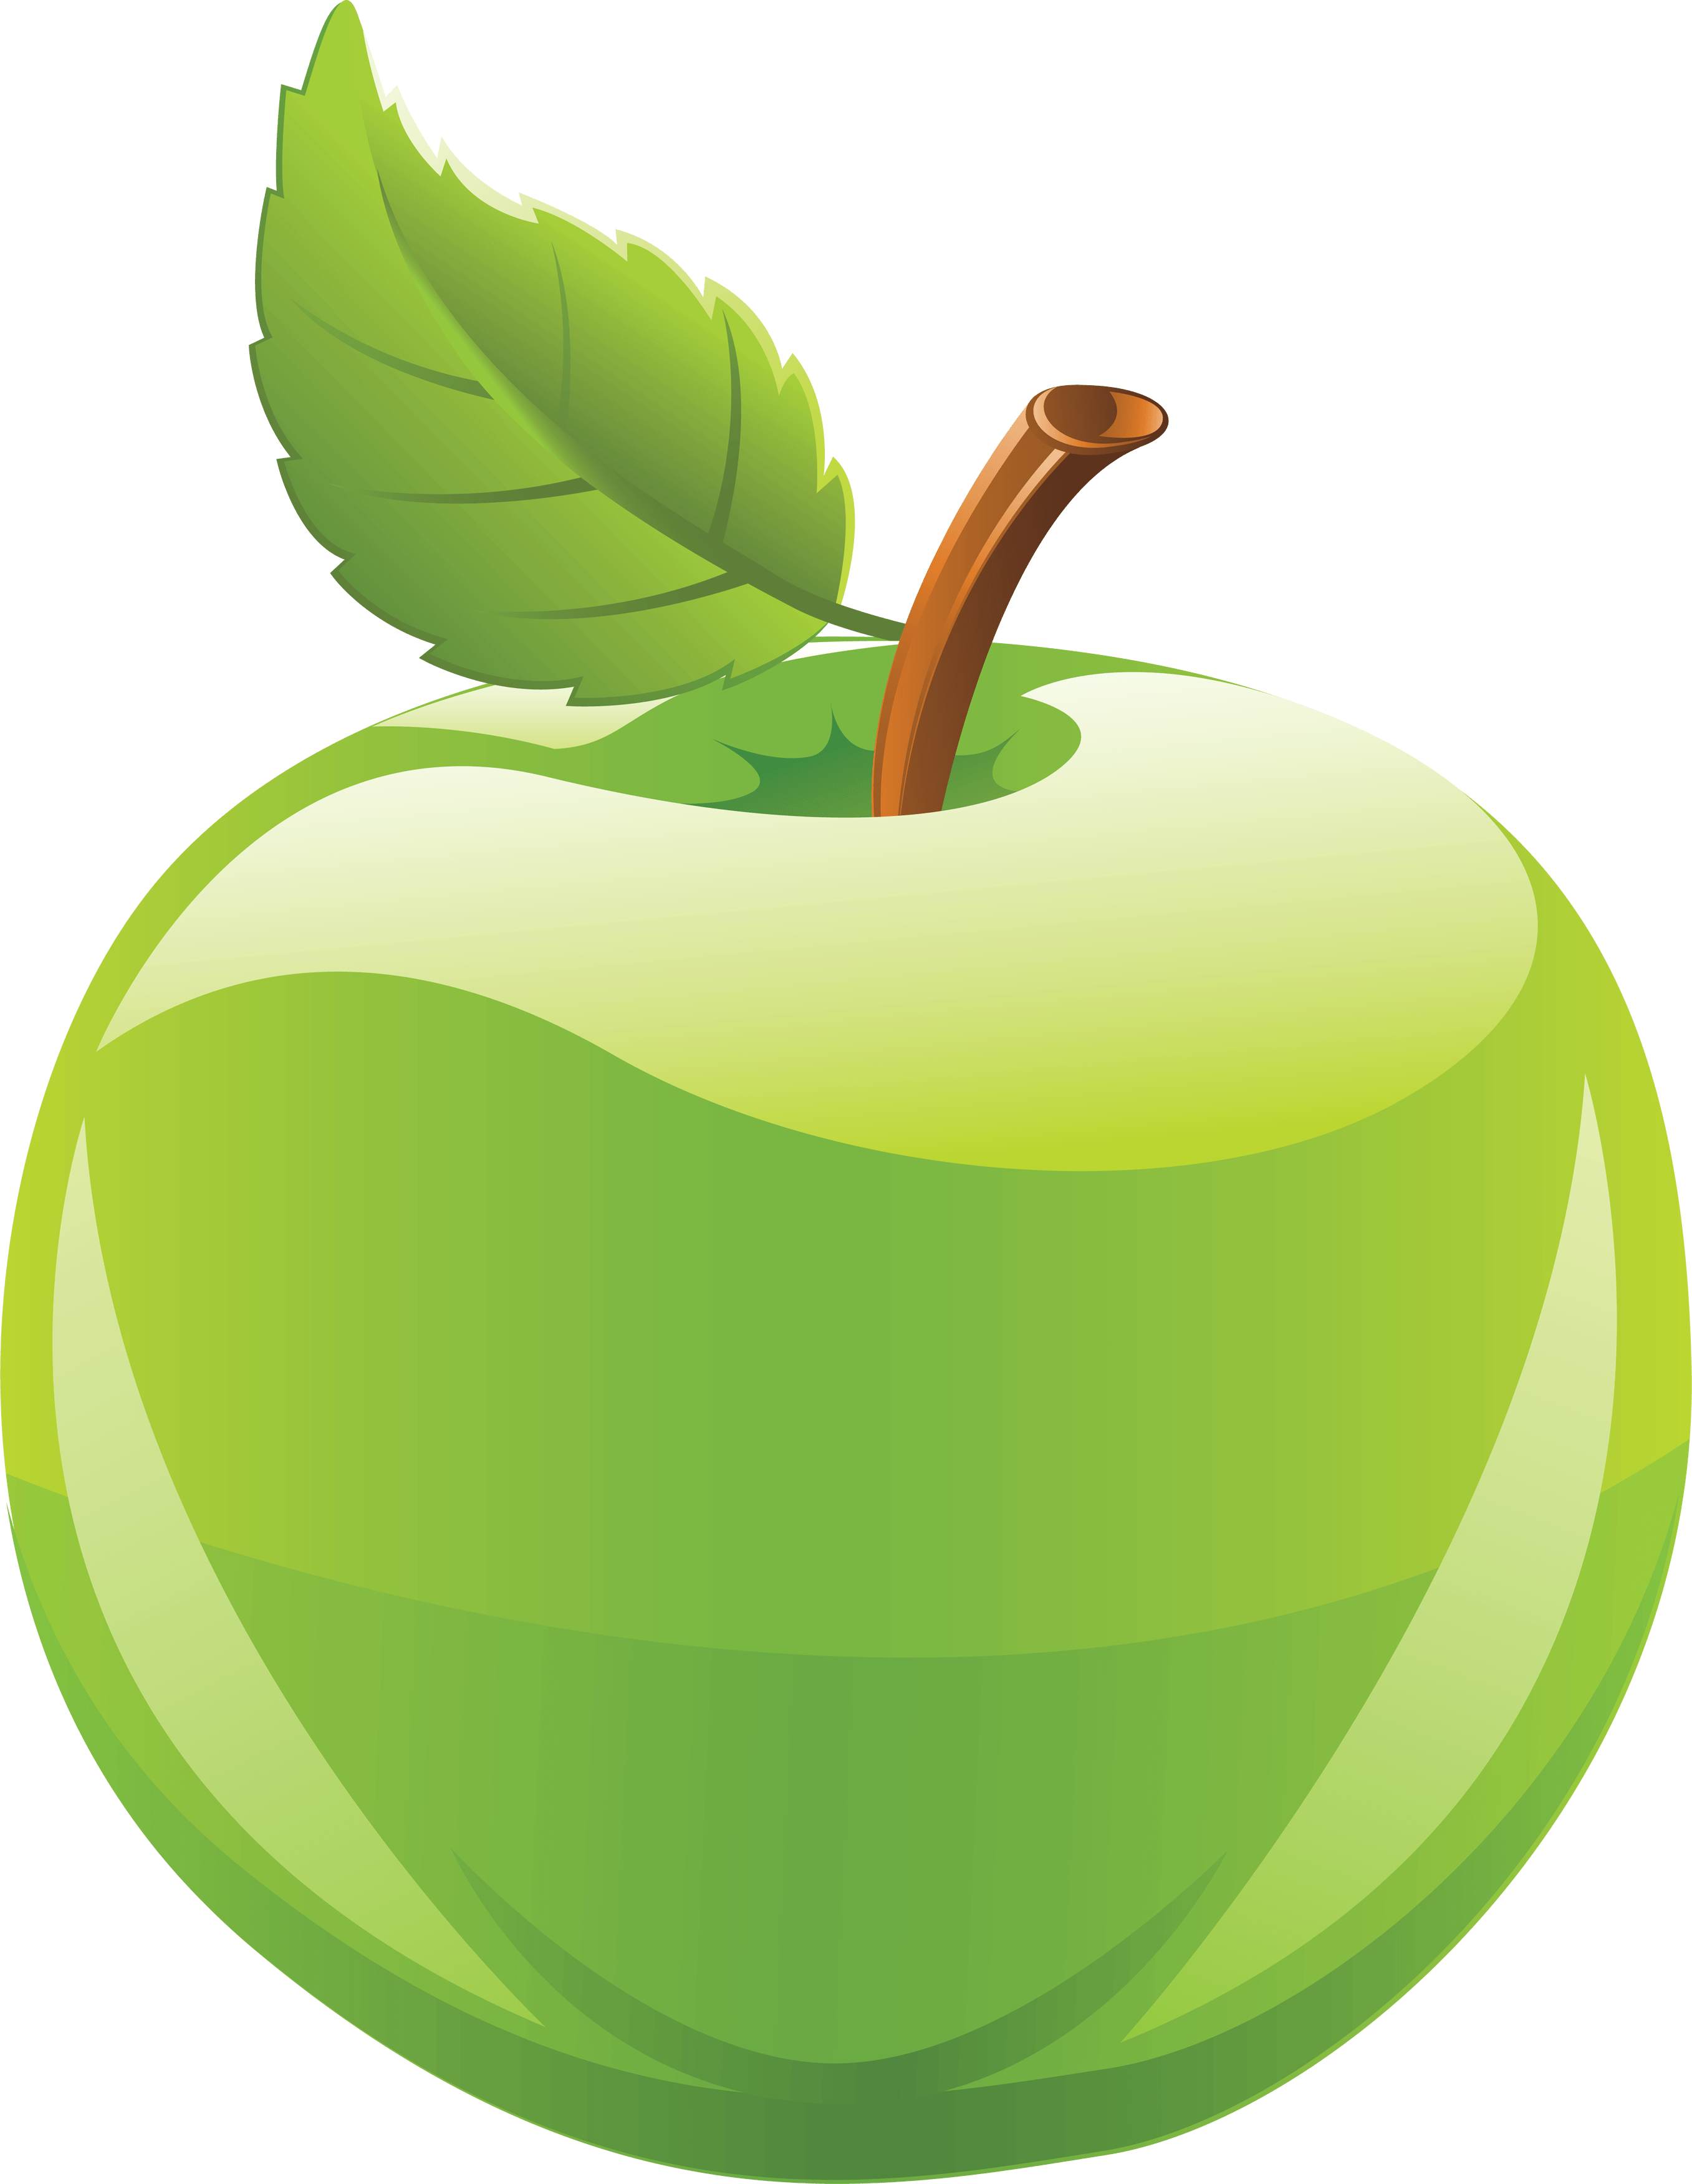 49 green apple png image clipart apple black and white clip art apples and oranges